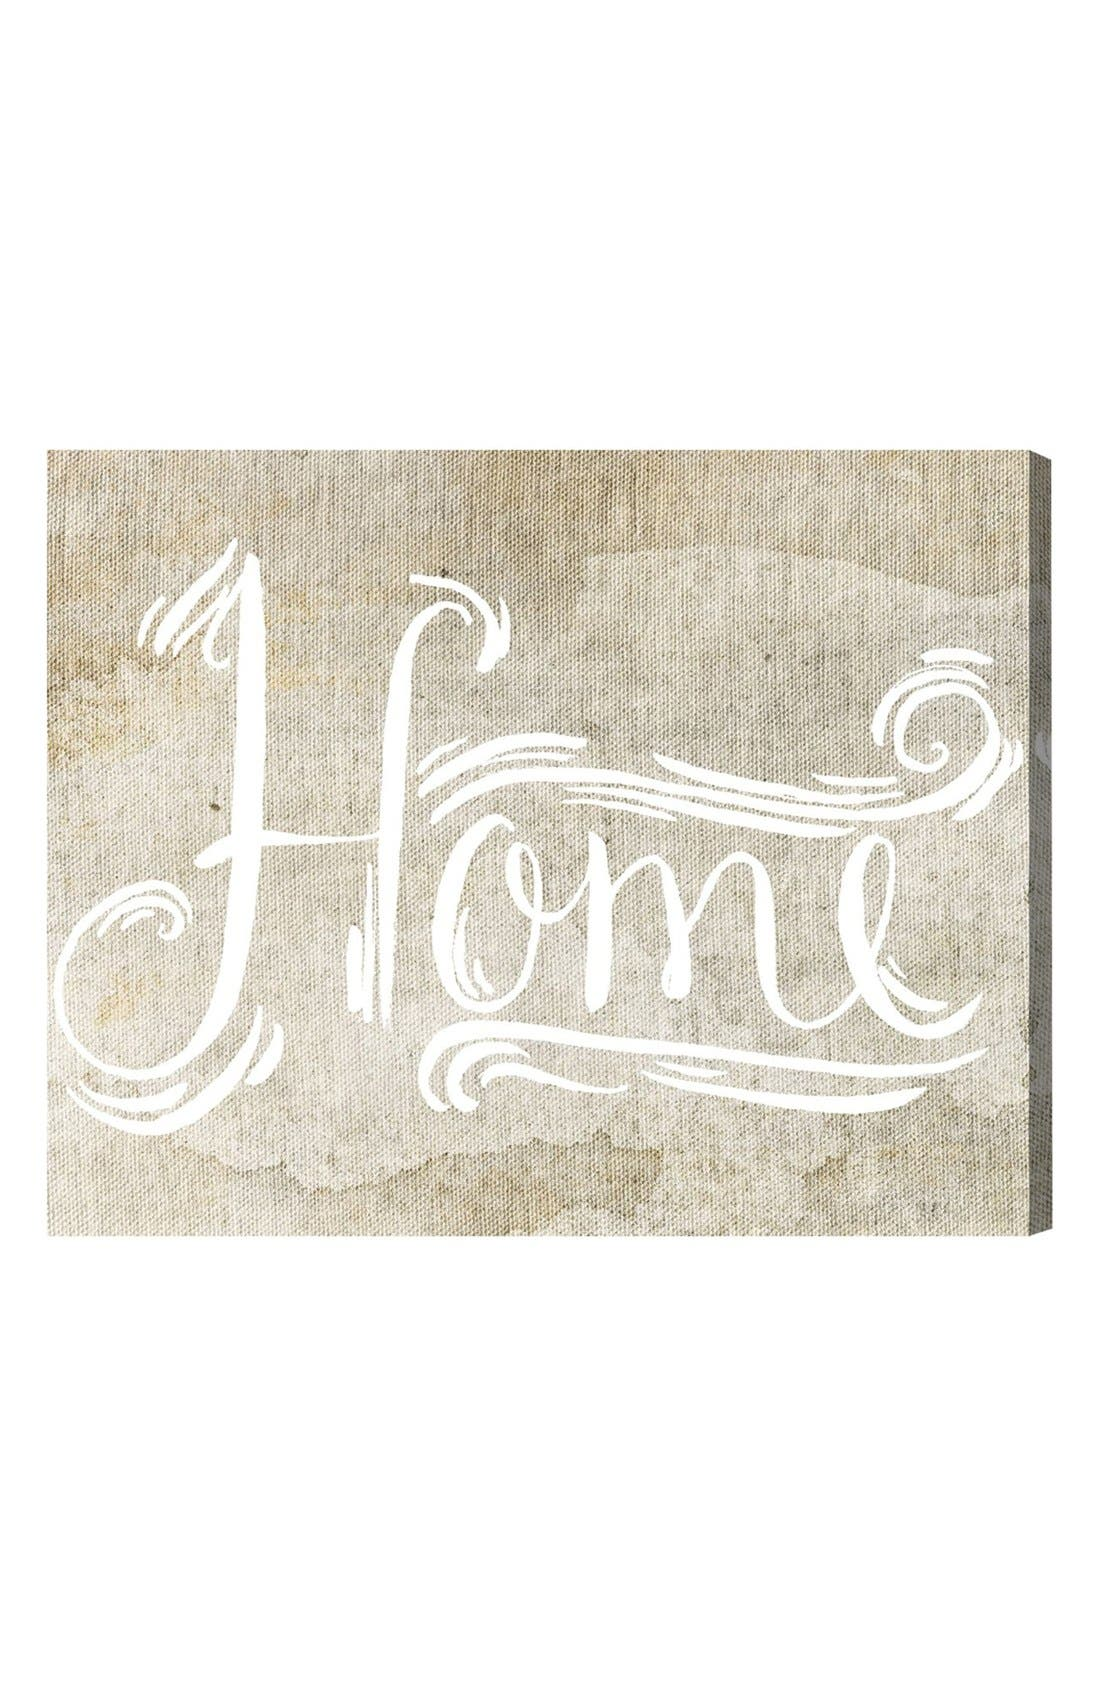 OLIVER GAL 'Home Sweet Home' Hand Stretched Canvas